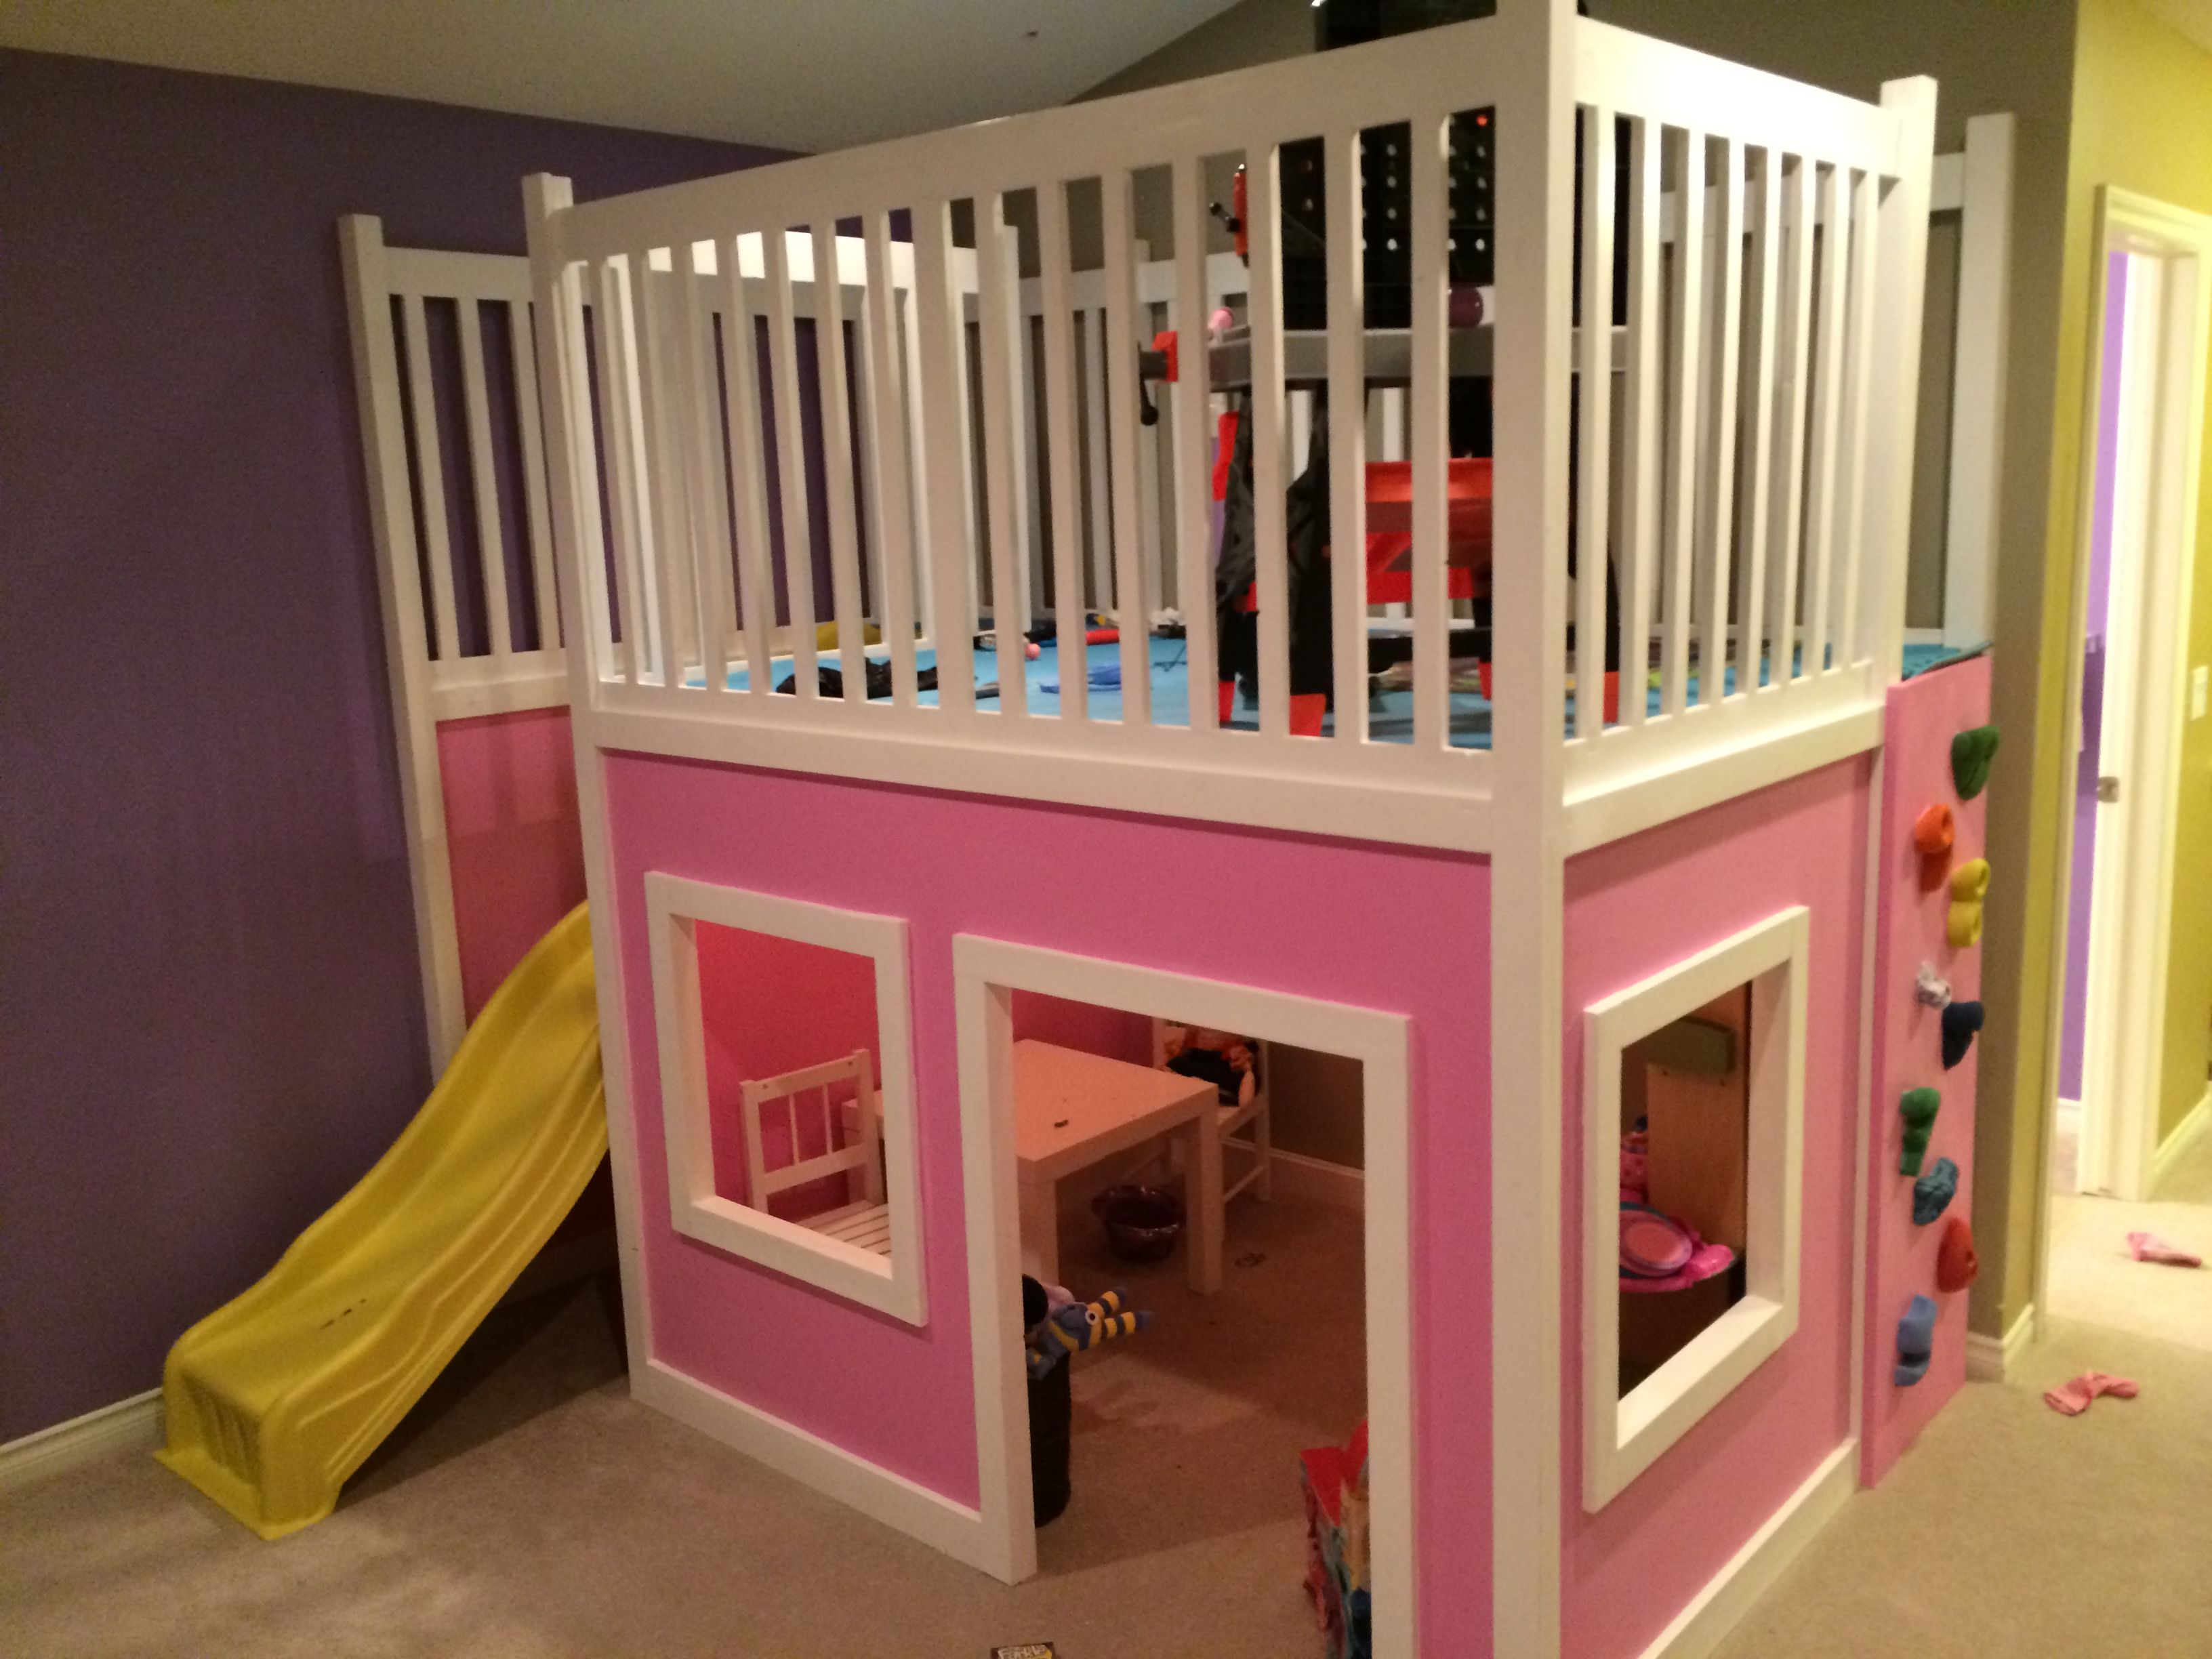 Diy Kids Beds Playhouse Loft Bed Do It Yourself Home Projects From Ana